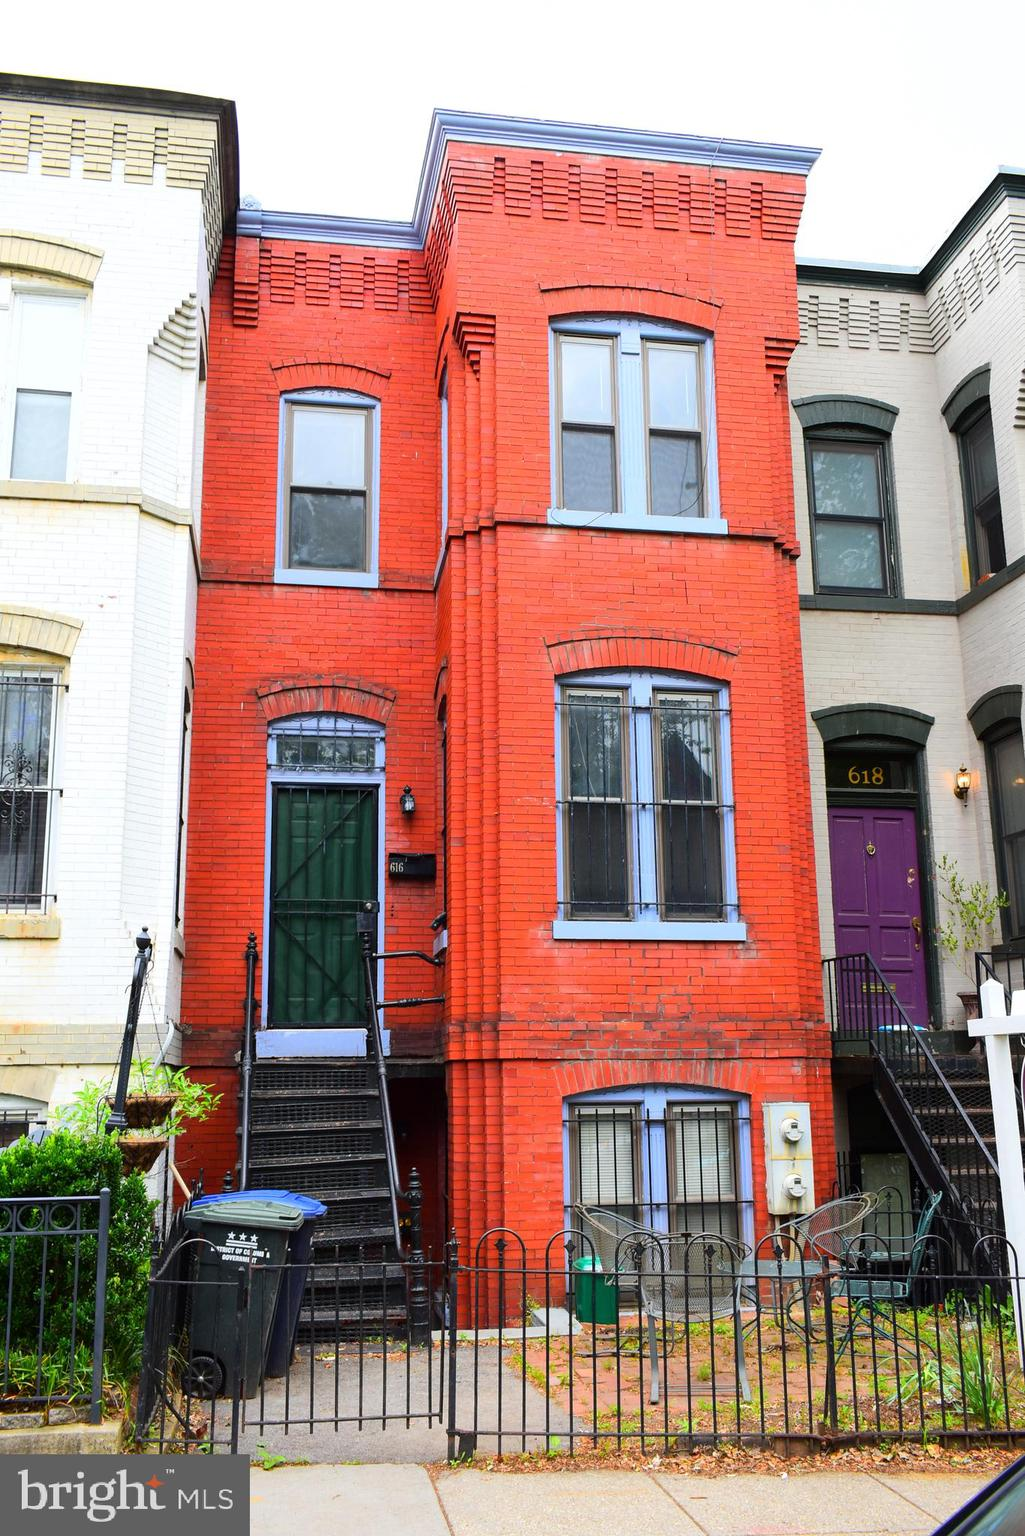 Purchased, renovated and lived in in 1991 by current owners, then kept as an investment rental since